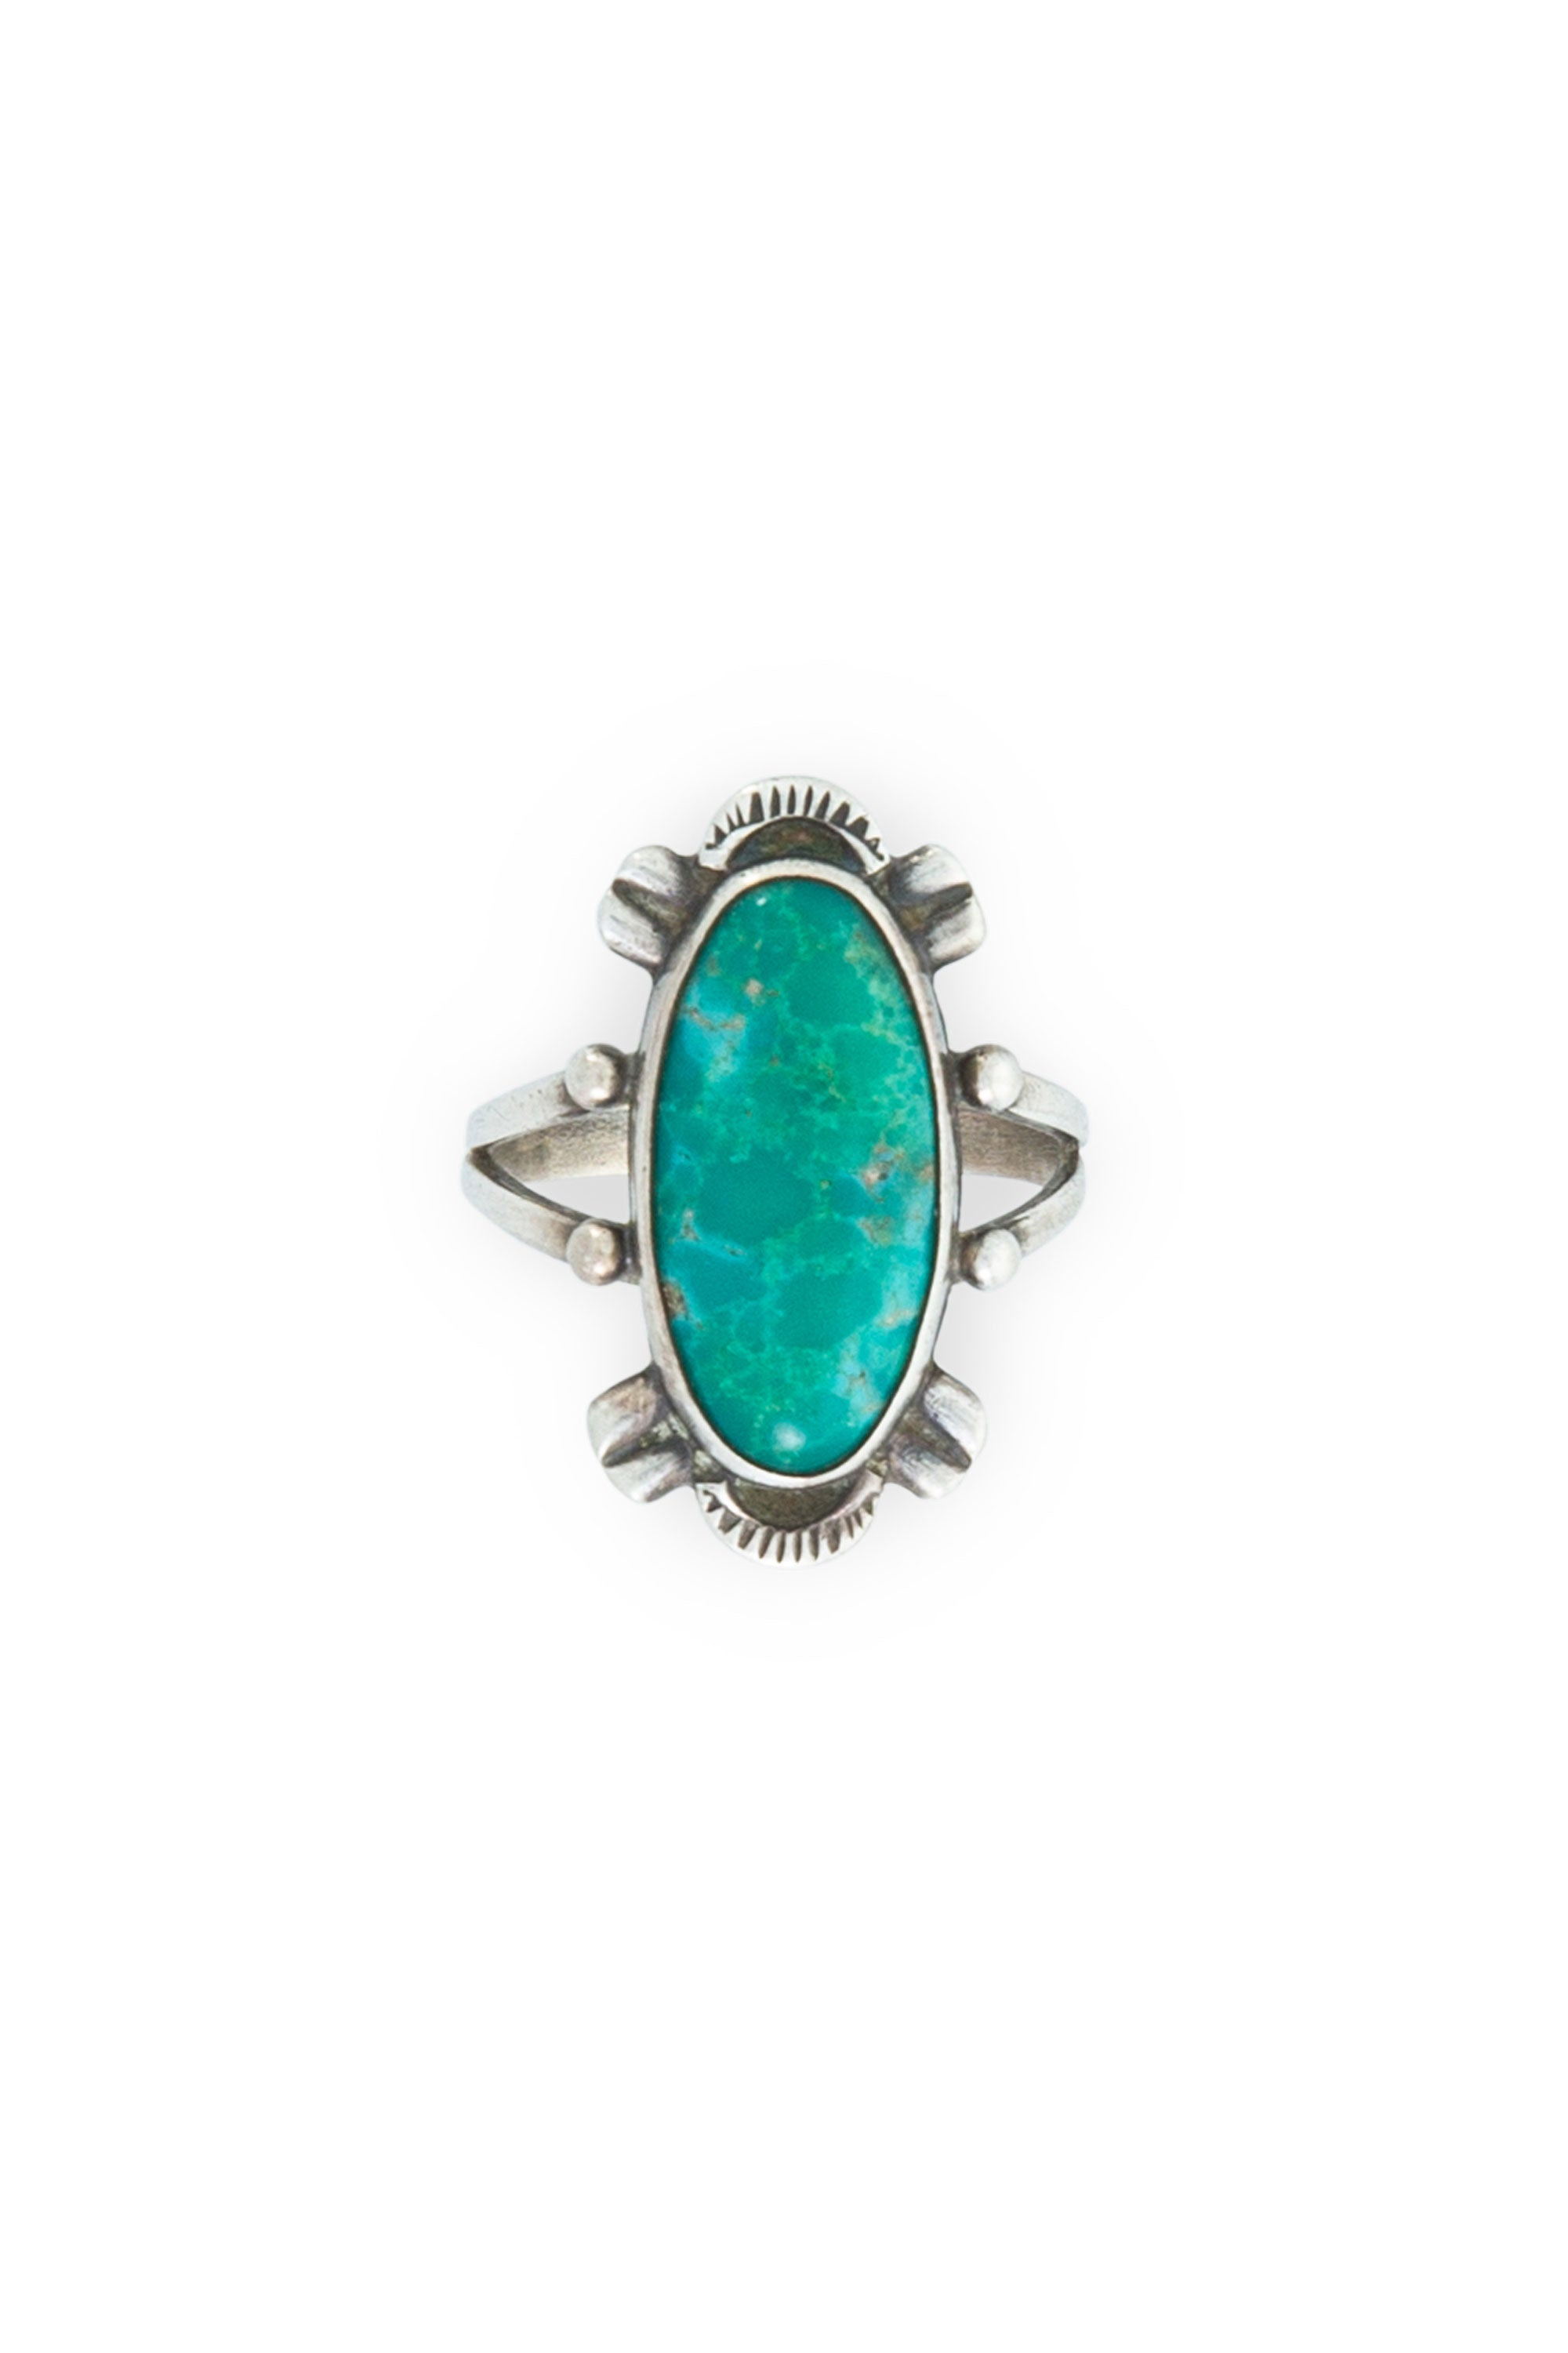 Ring, Turquoise & Sterling Silver,  Single Stone, Vintage, 589